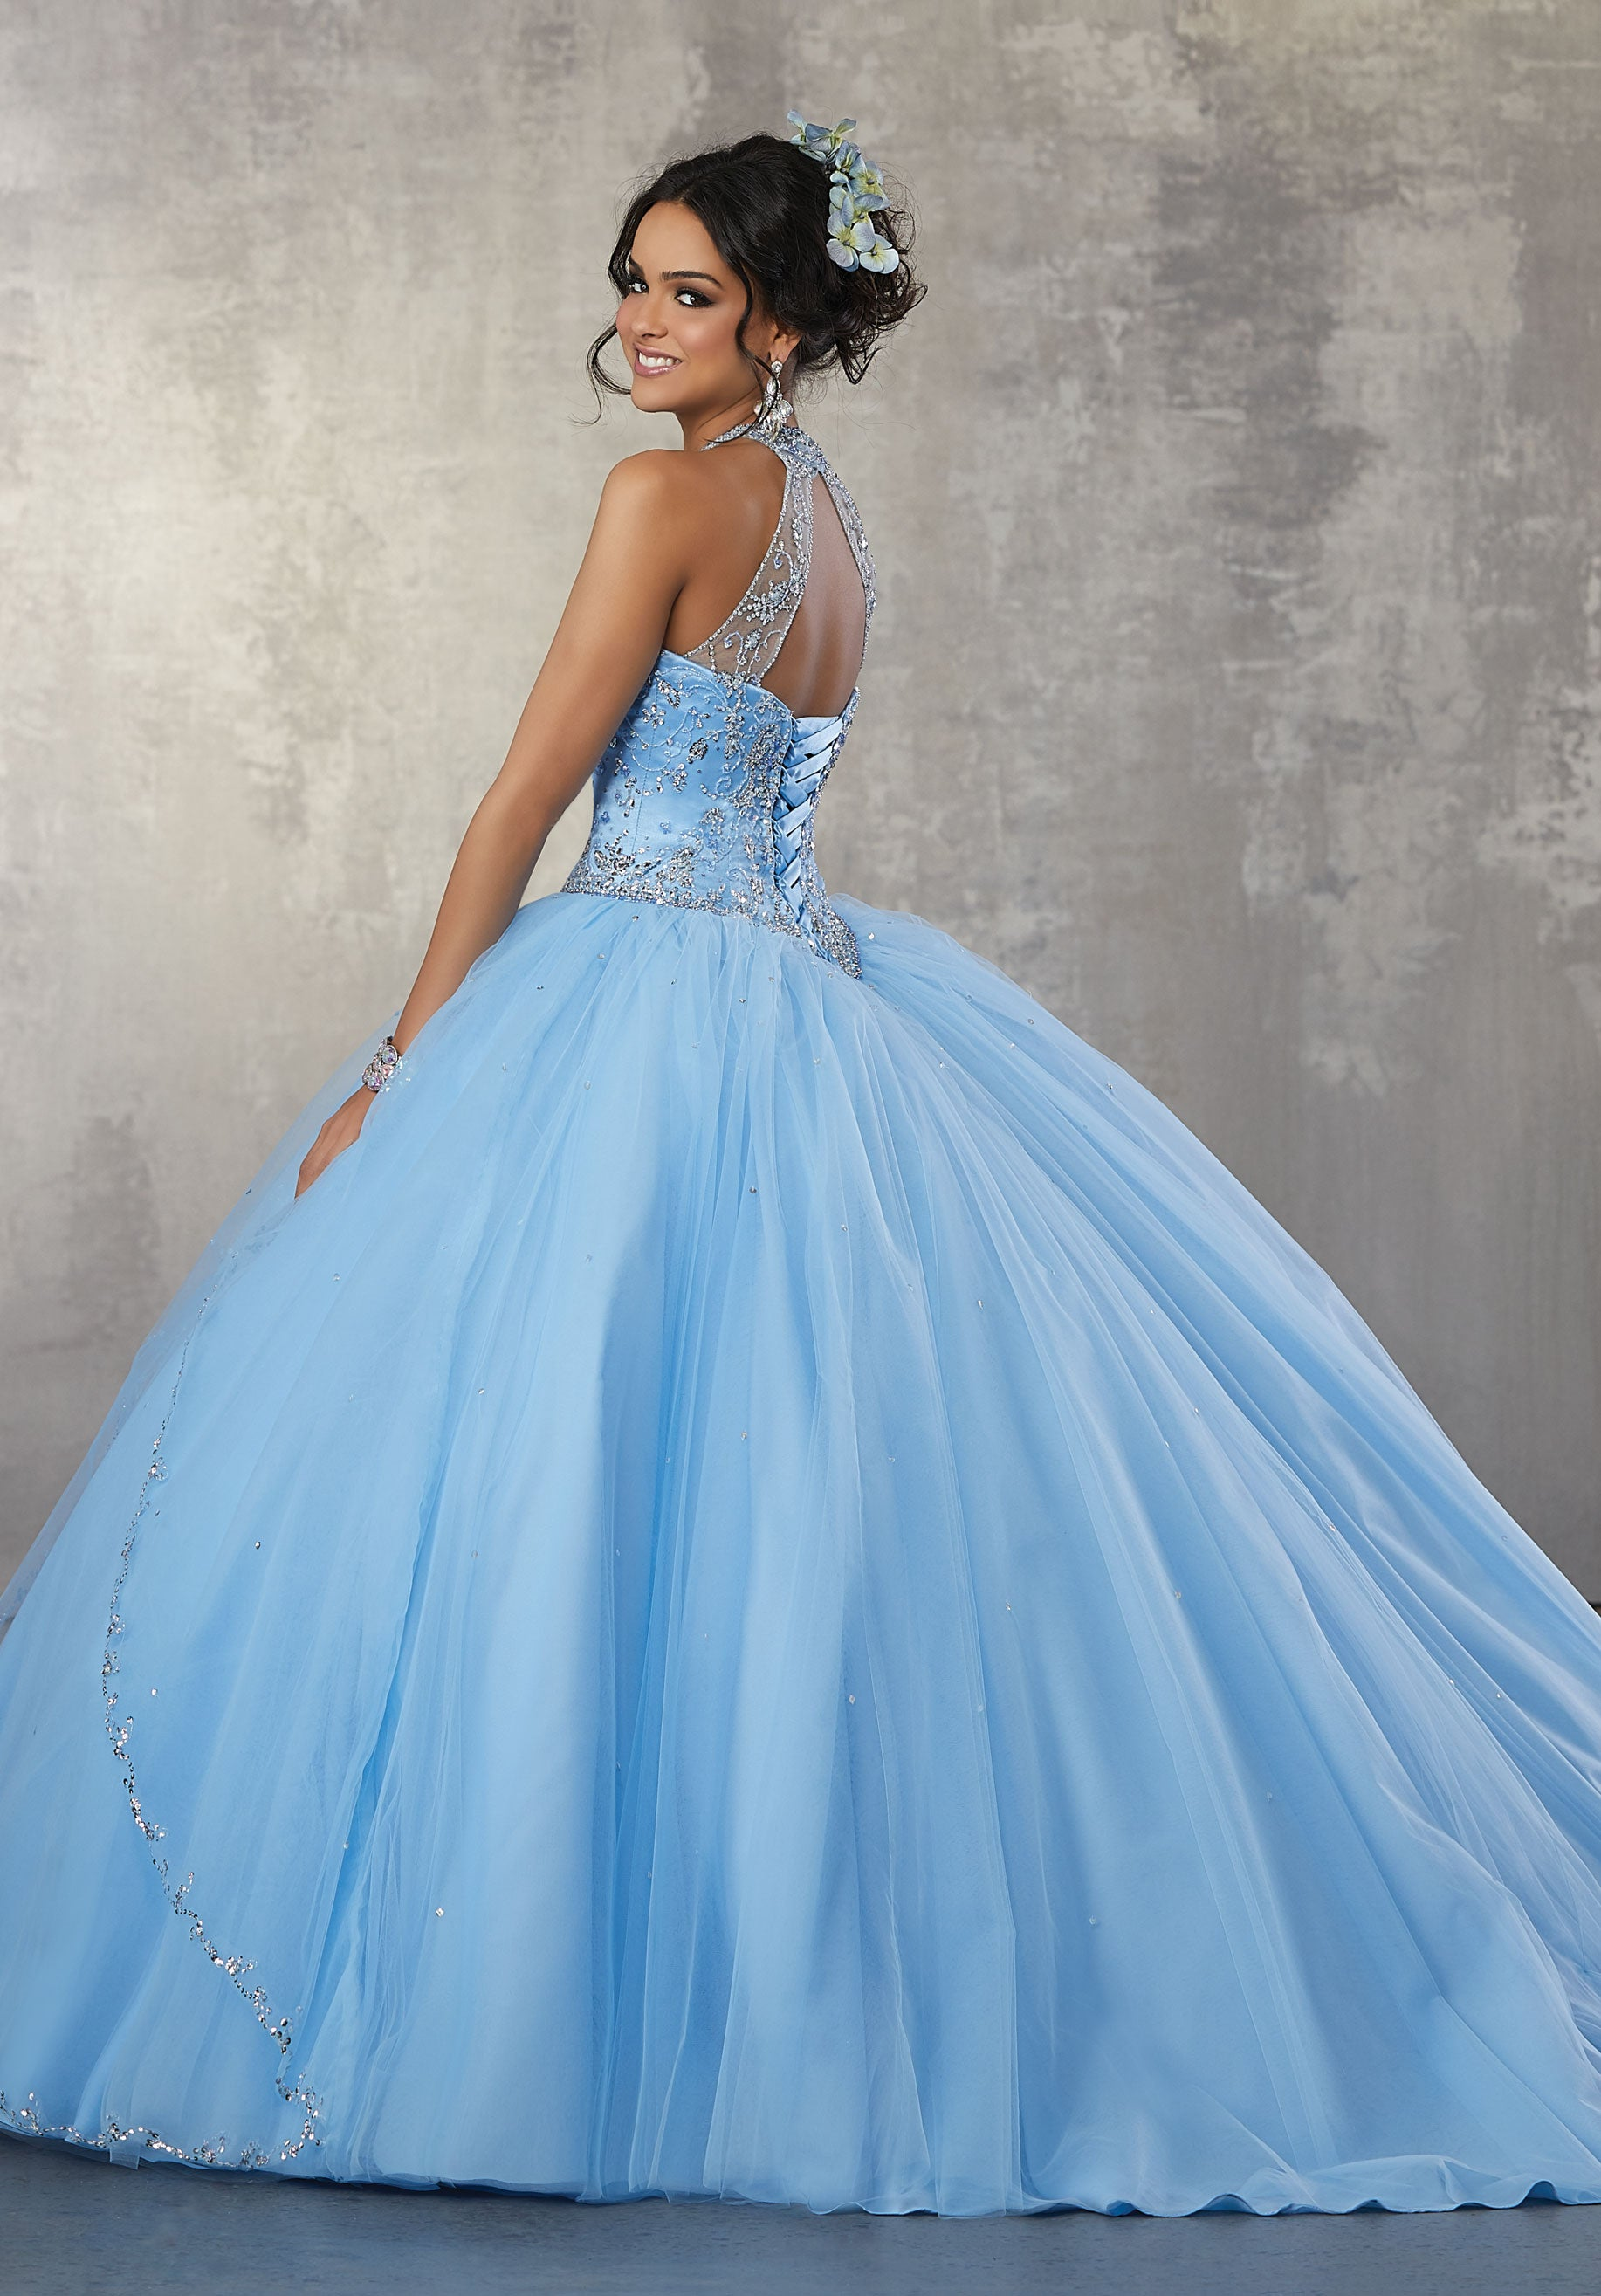 78069 Quinceanera Princess Tulle Ballgown with Beaded Trim and ...